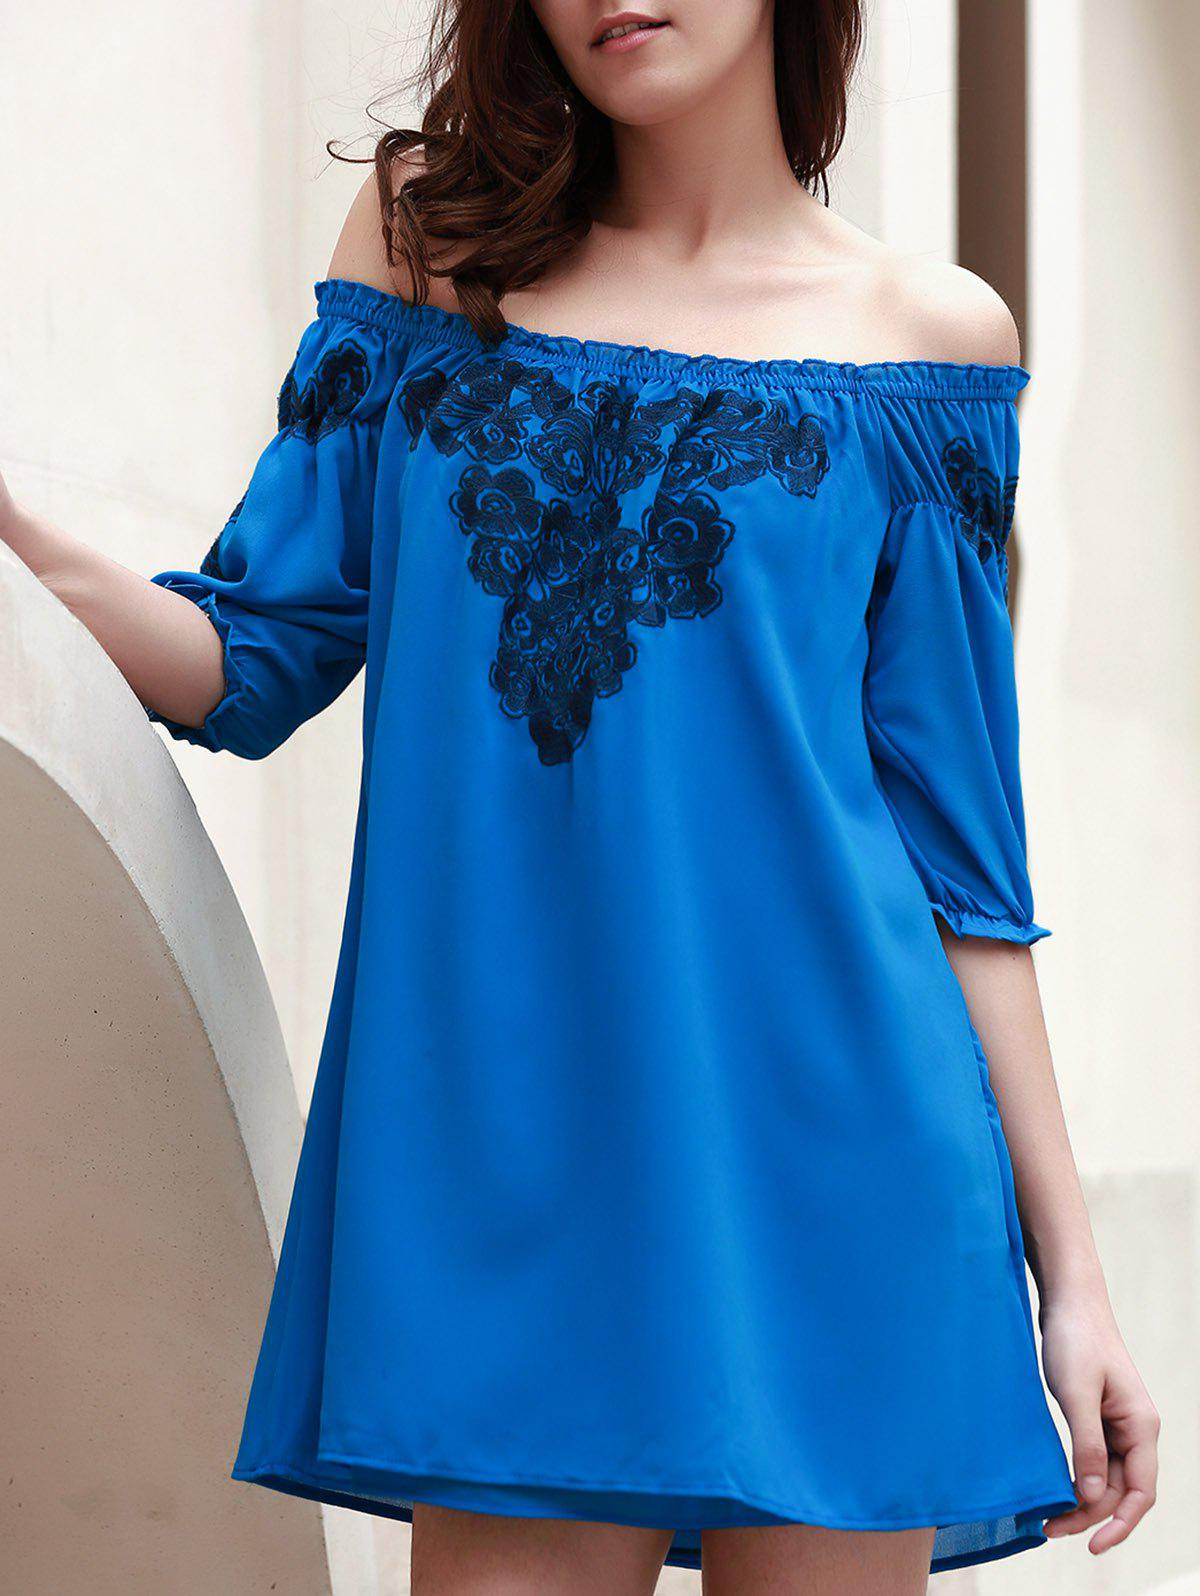 Chic 3/4 Sleeve Off-The-Shoulder Embroidered Women's Dress - BLUE S